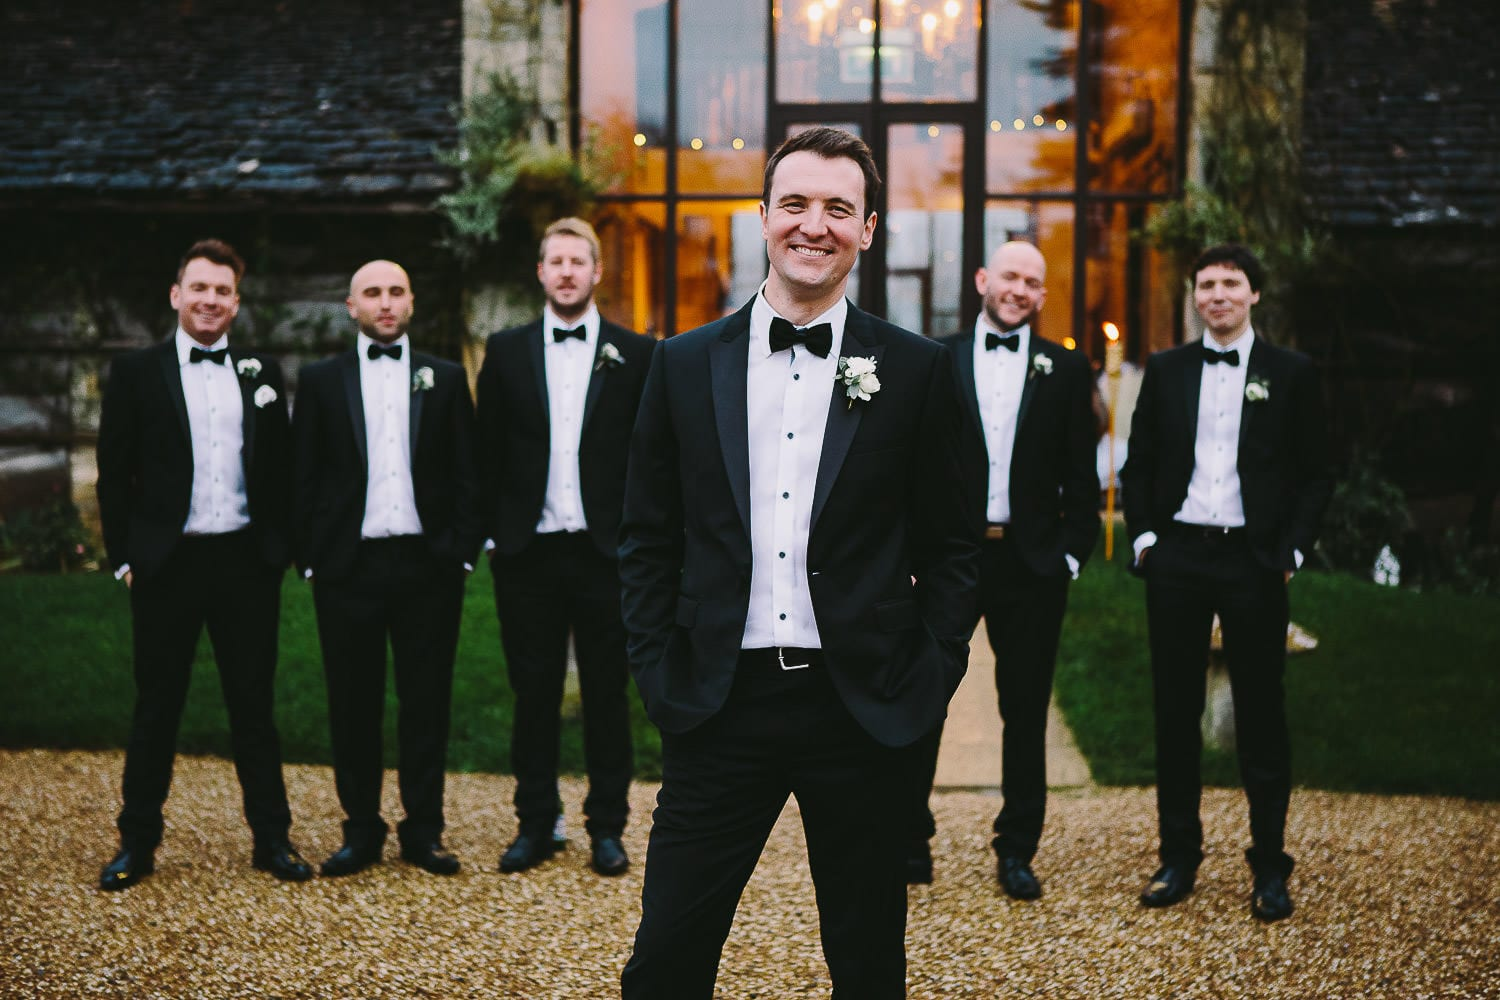 The groom with his groomsmen outside the barn